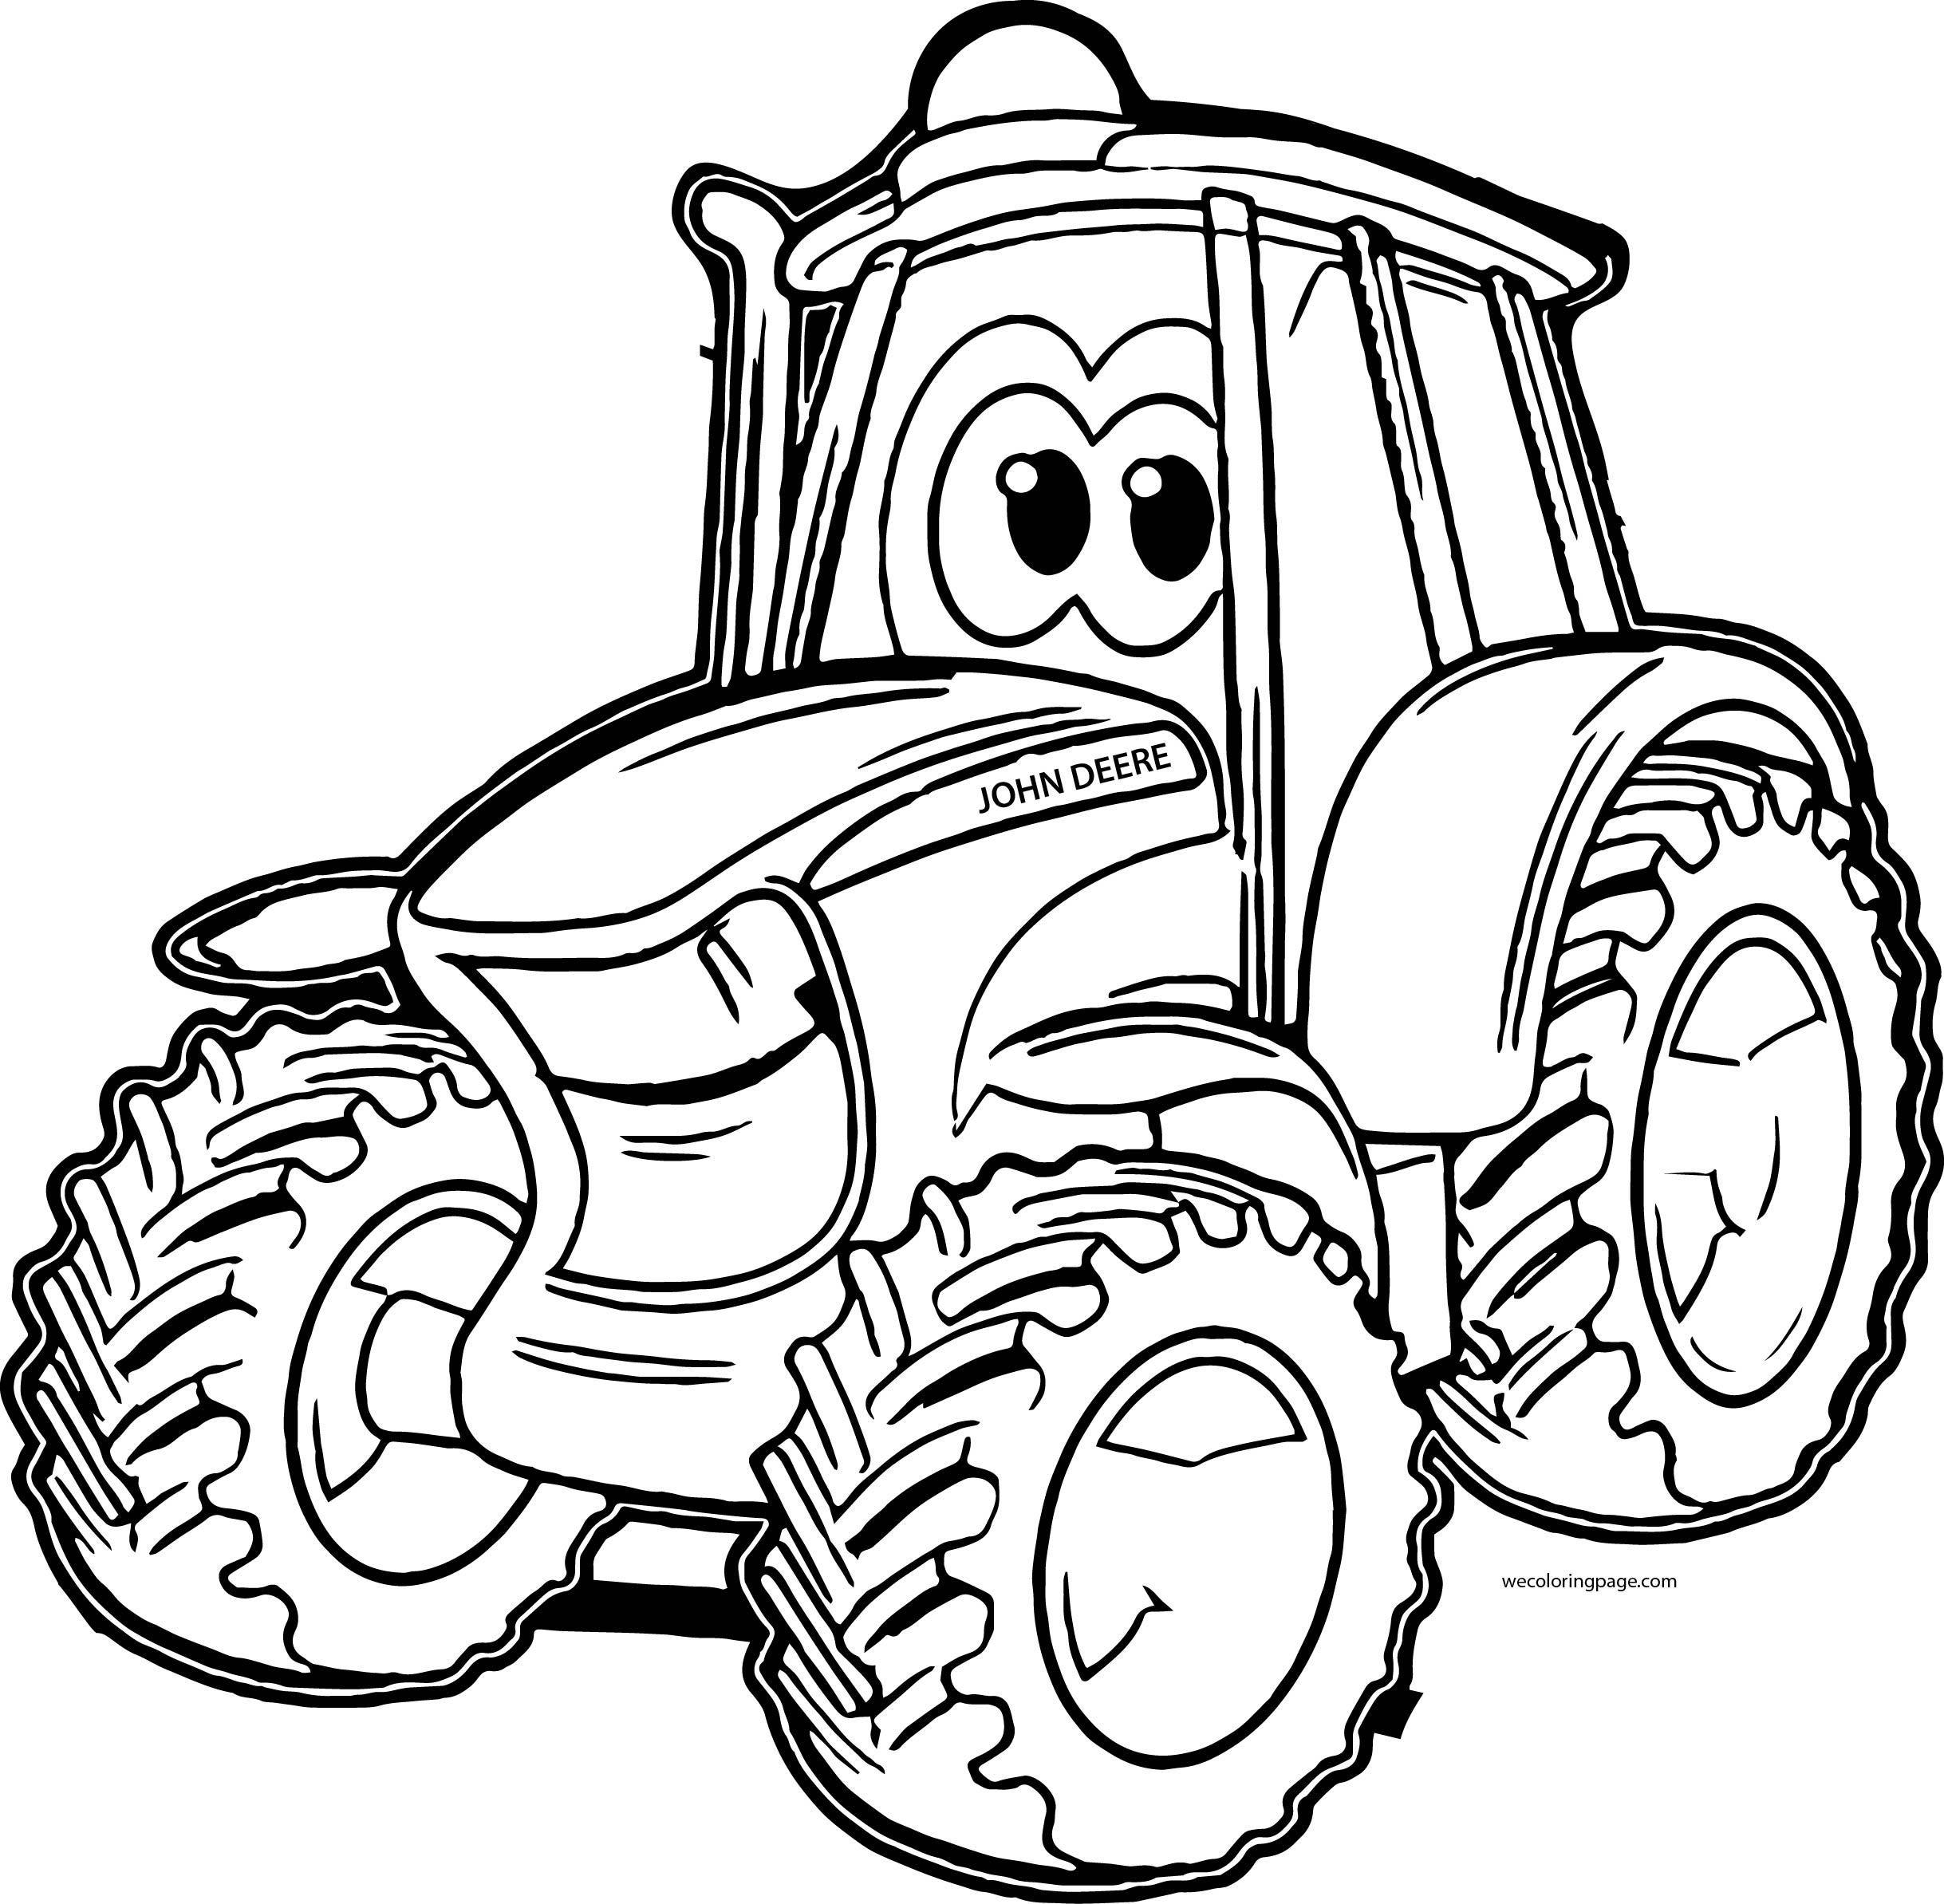 tractor coloring pages - john deere tractor coloring pages sketch templates